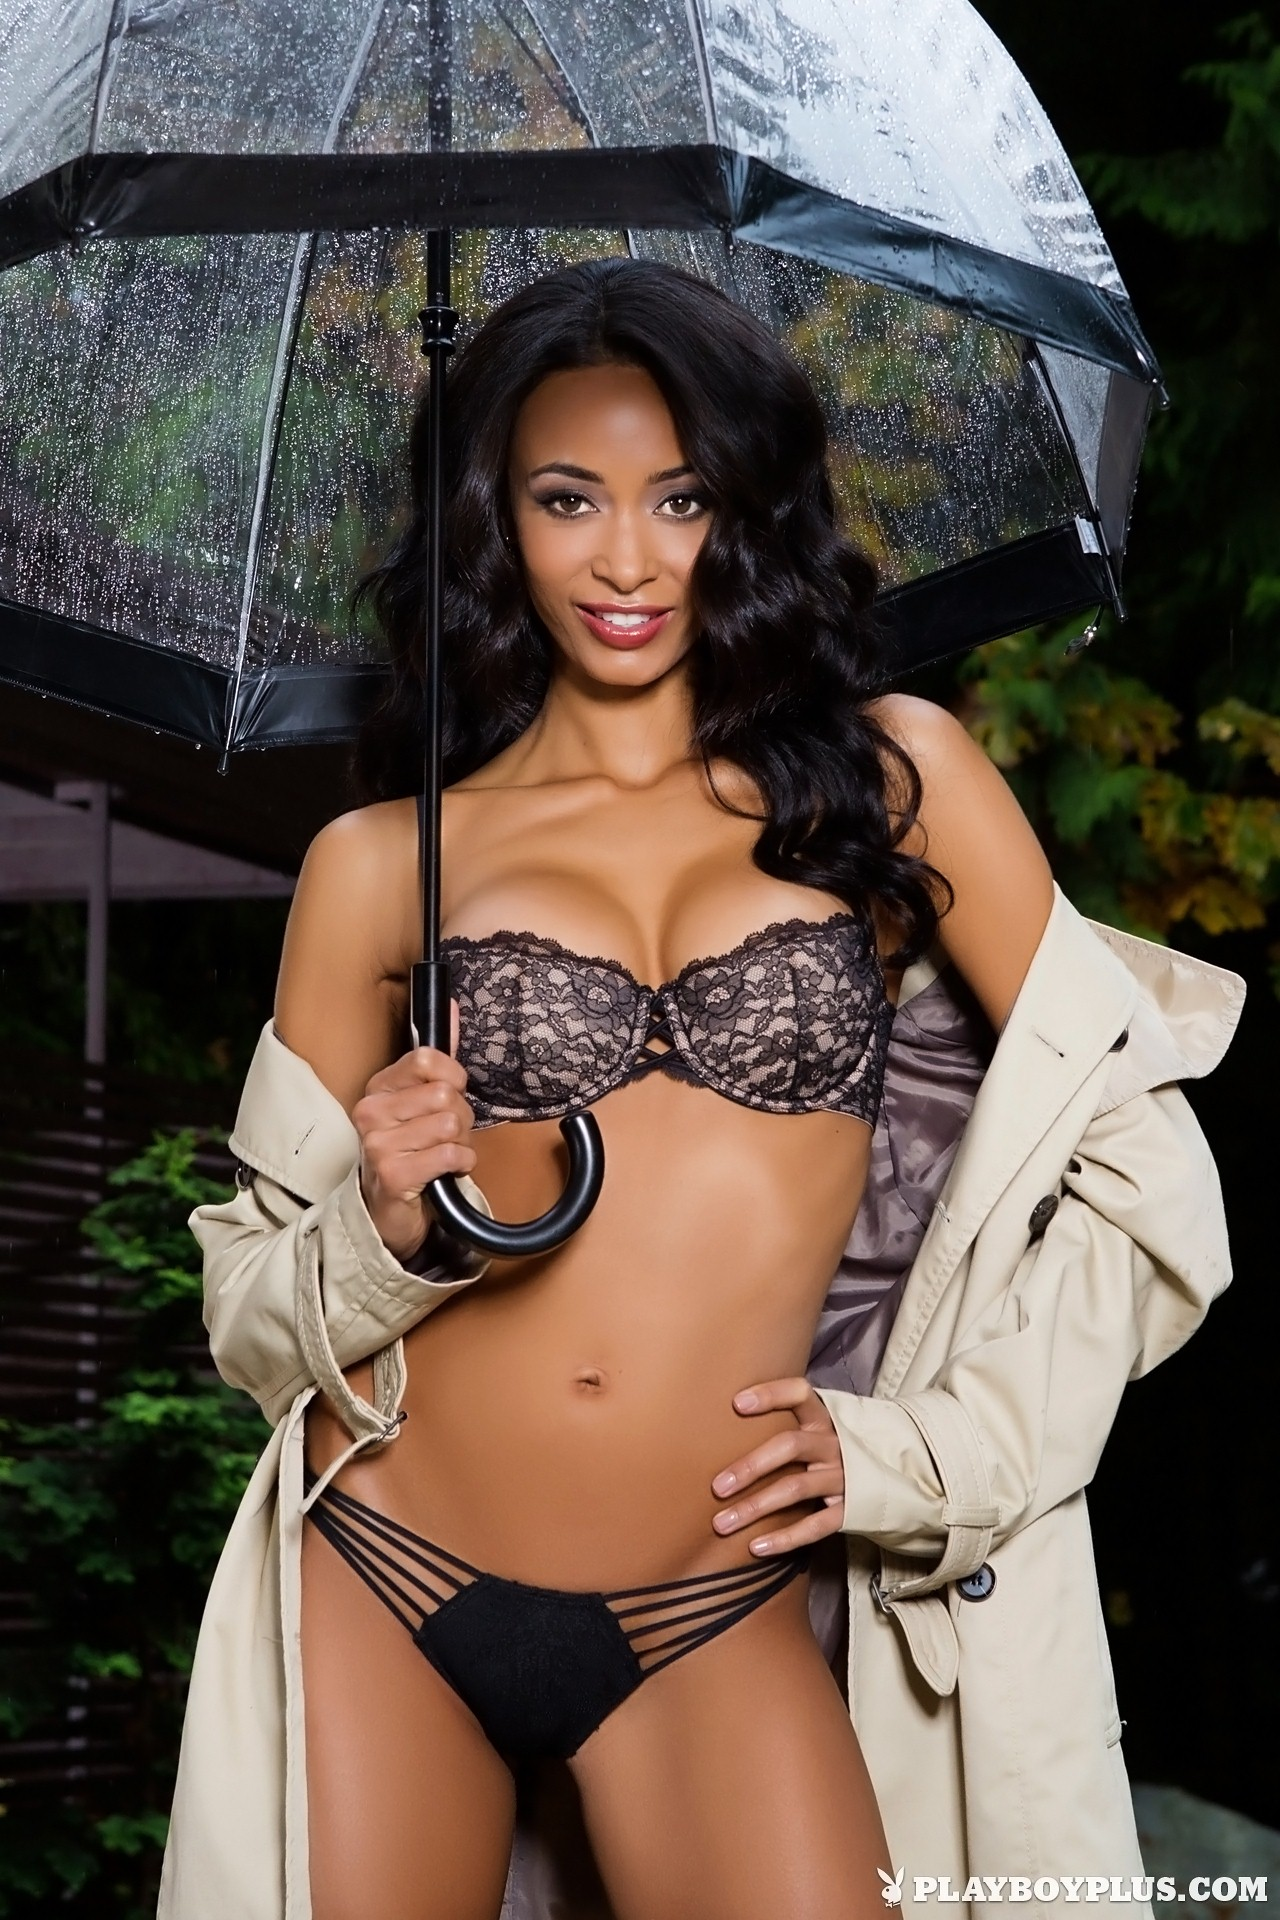 Brandi Alexander Stripping in the Rain for Playboy | Daily Girls @ Female Update